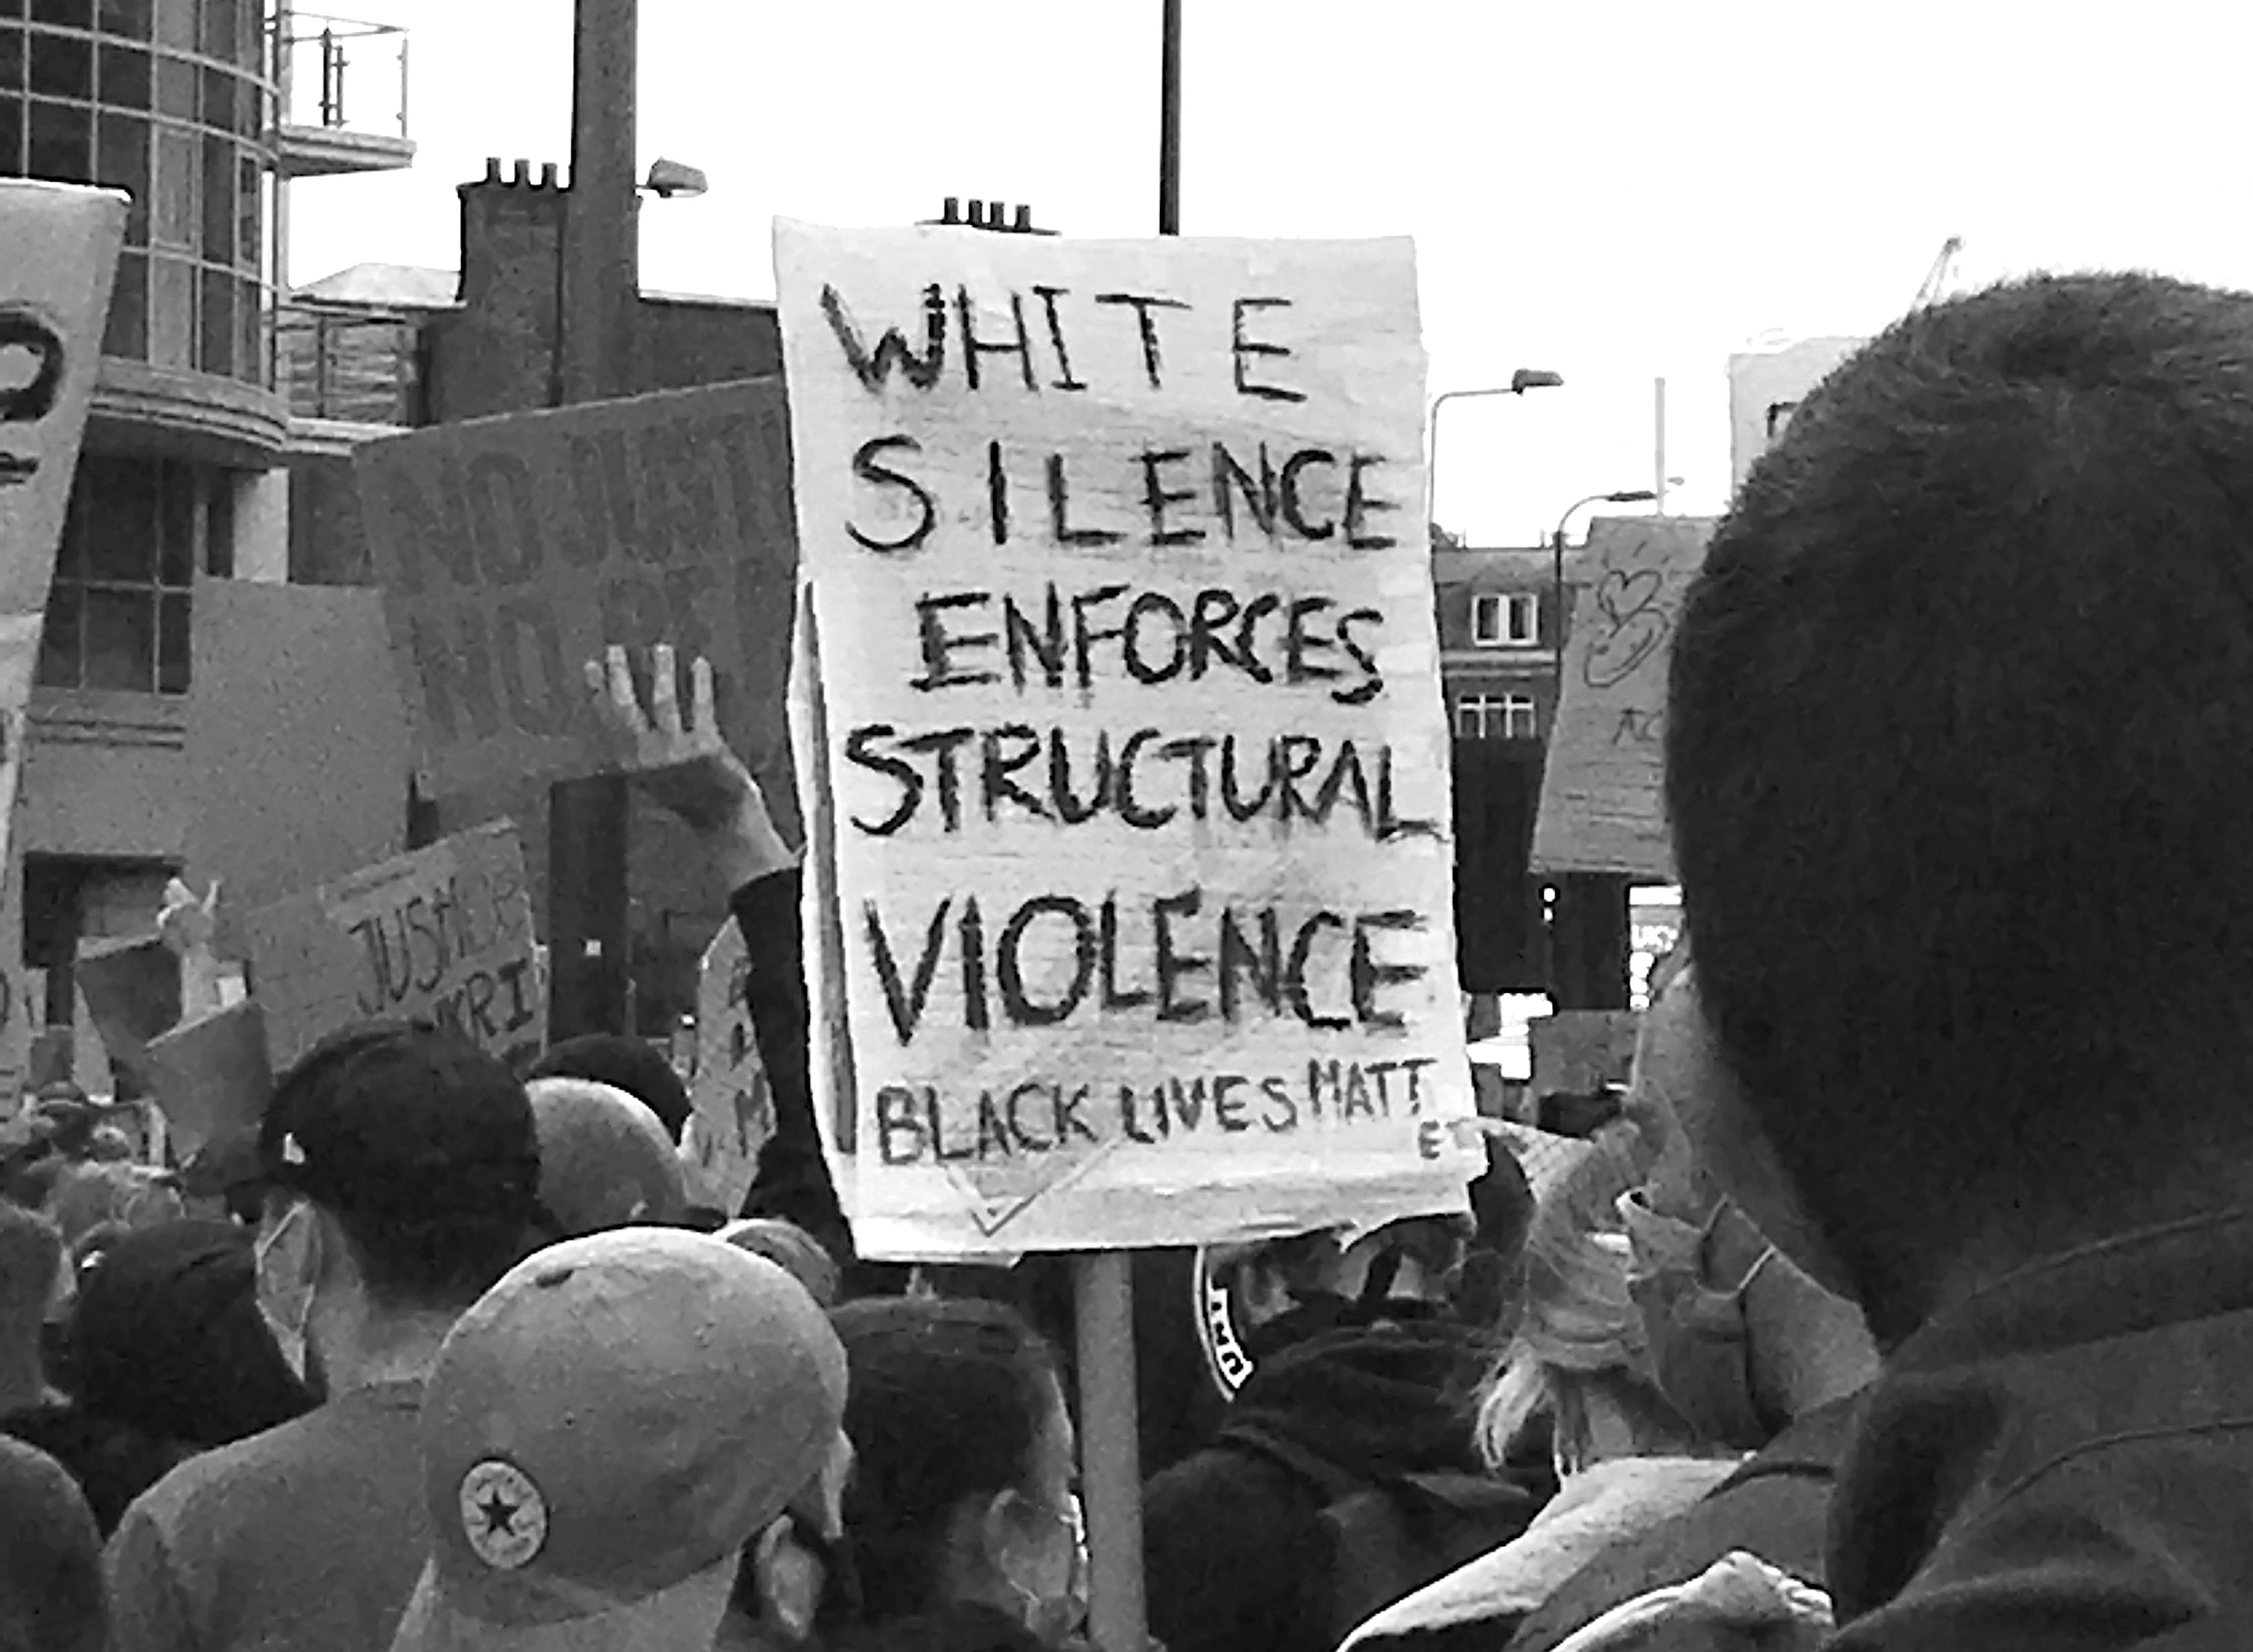 White Silence structural violence